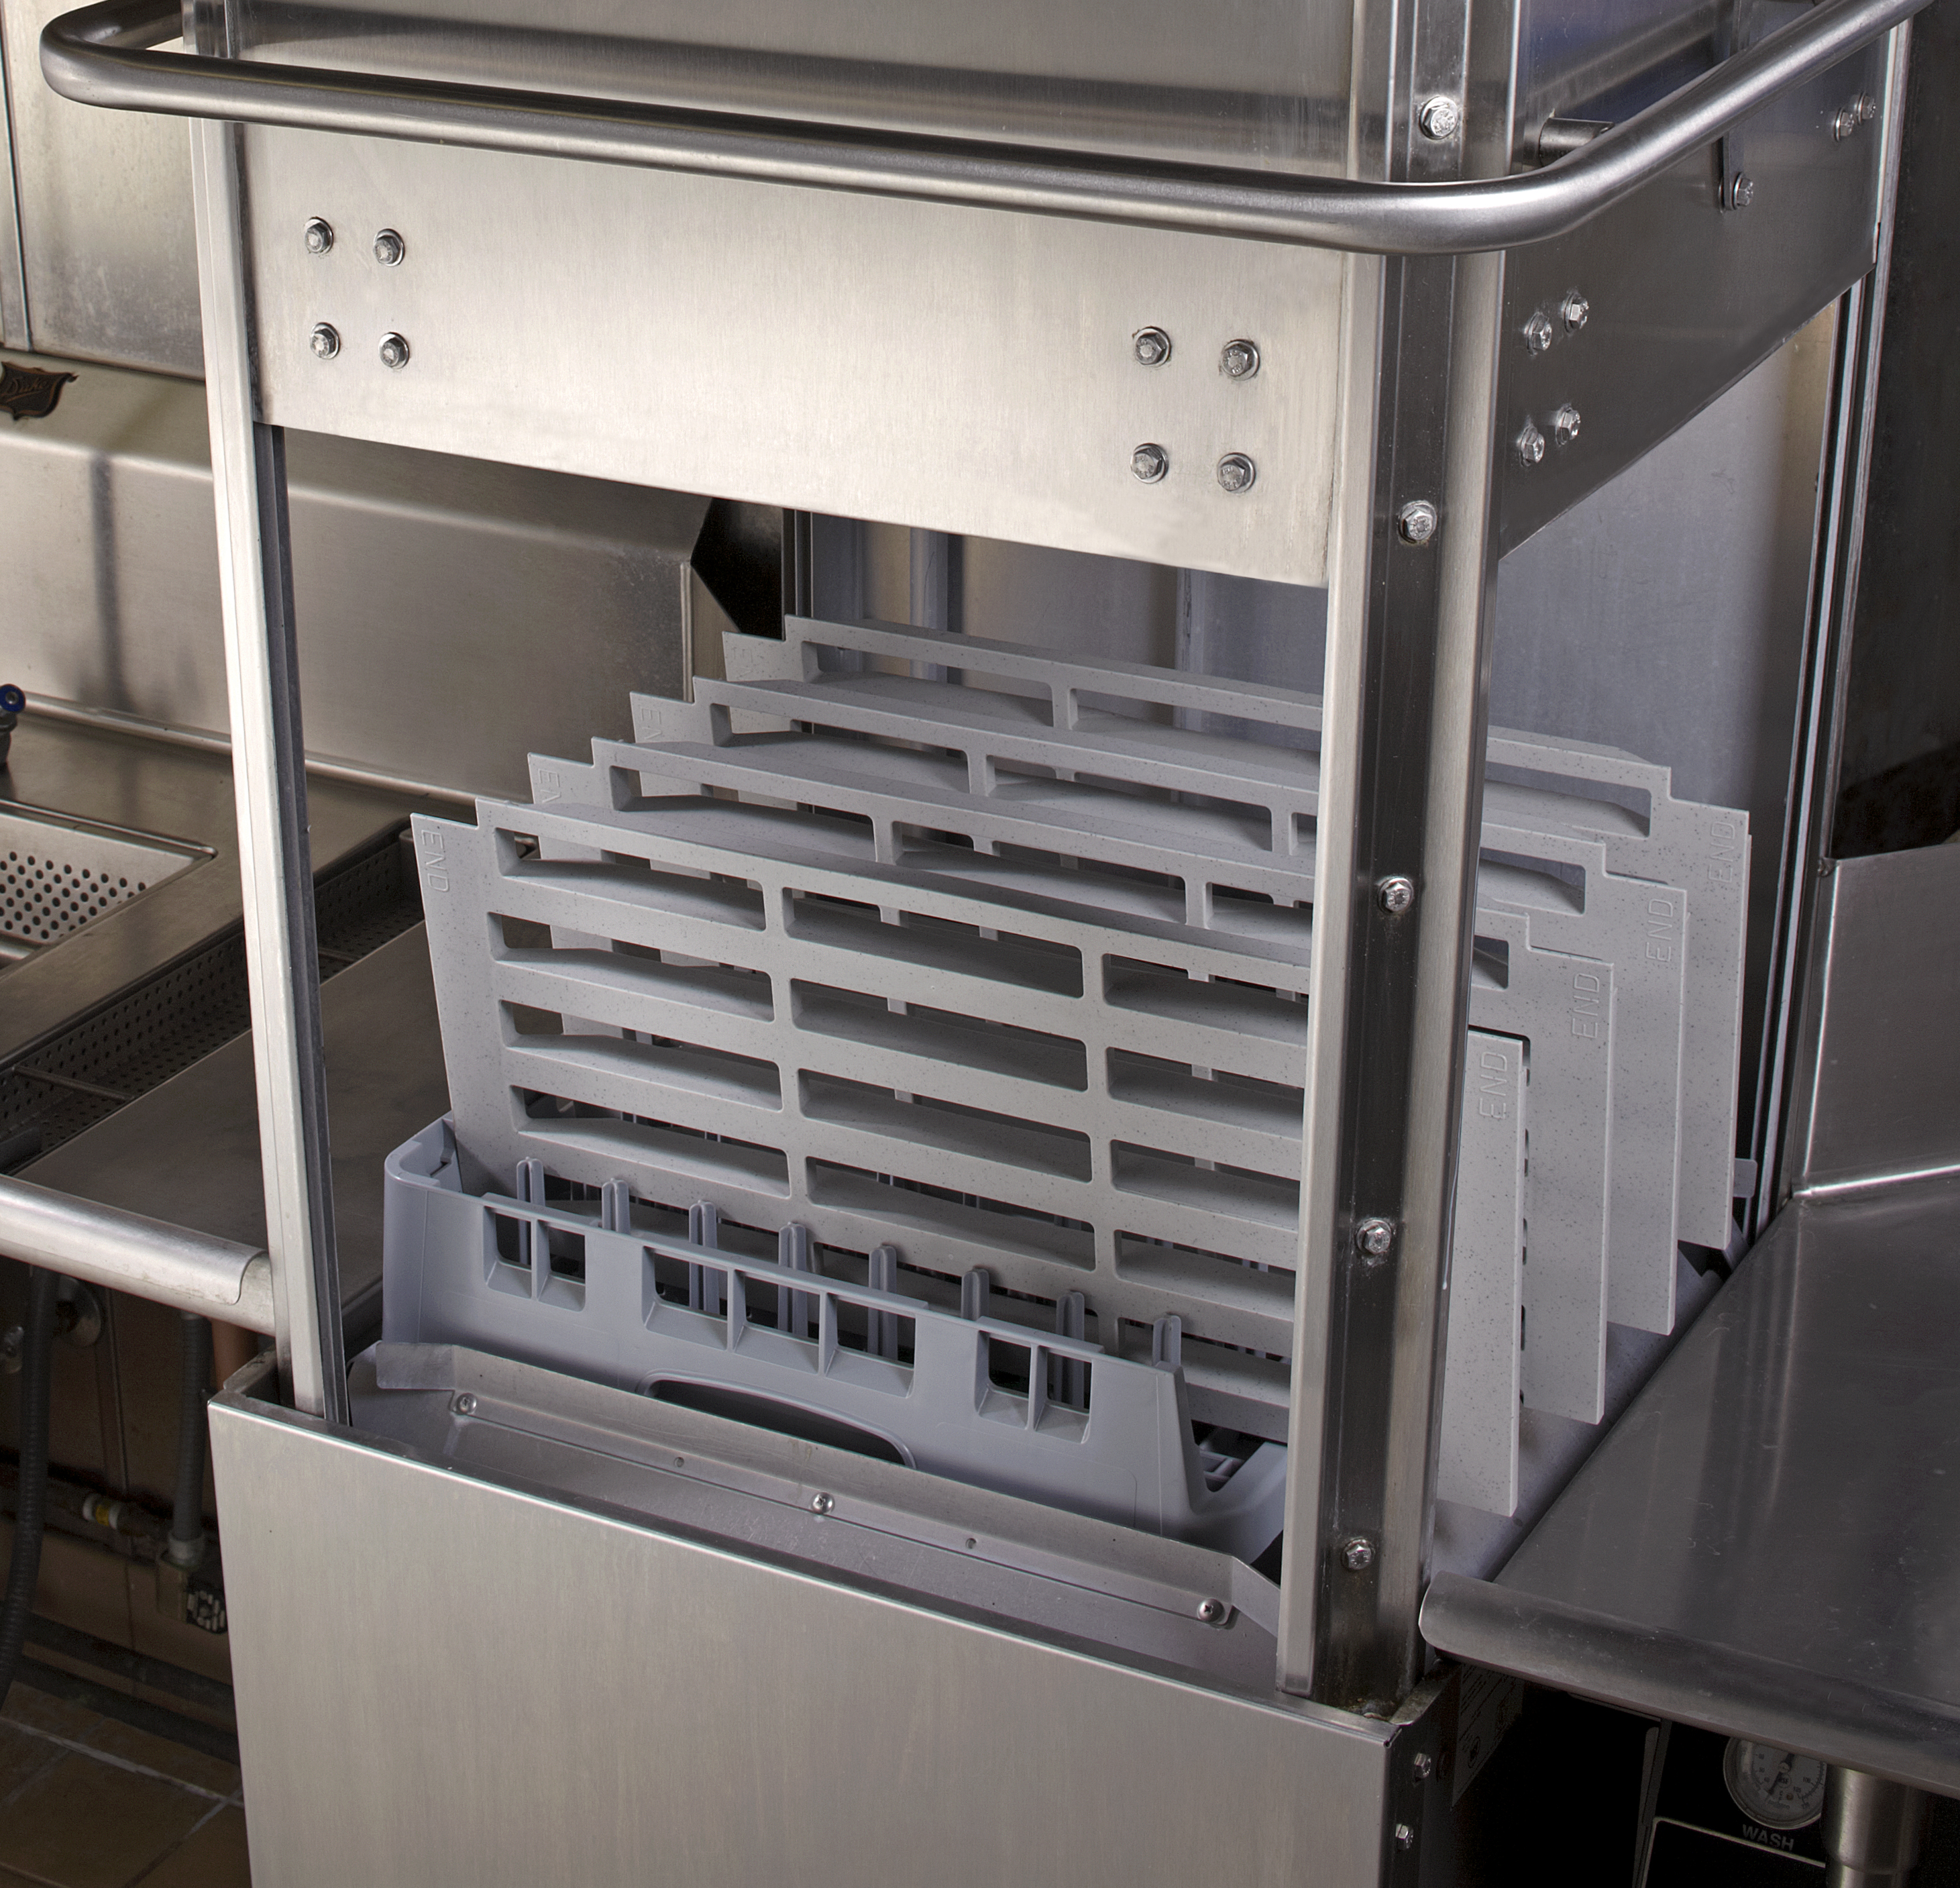 Open-ended Camrack® for Washing Shelf Plates